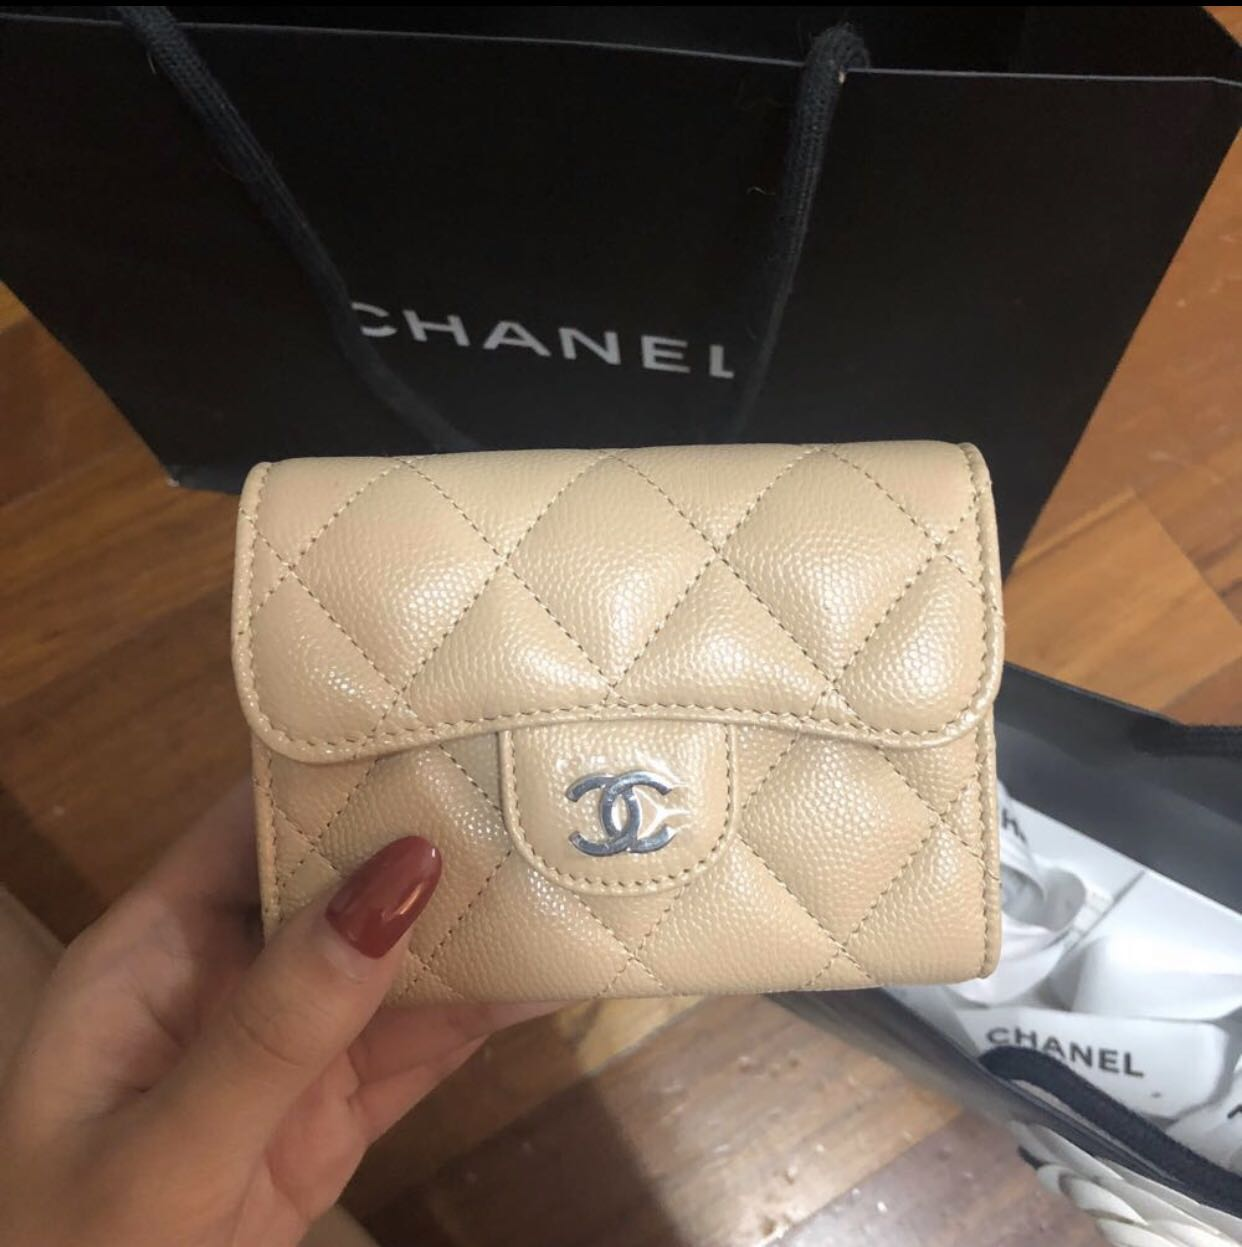 520c0e20f530e5 Chanel Card wallet, Luxury, Bags & Wallets, Wallets on Carousell